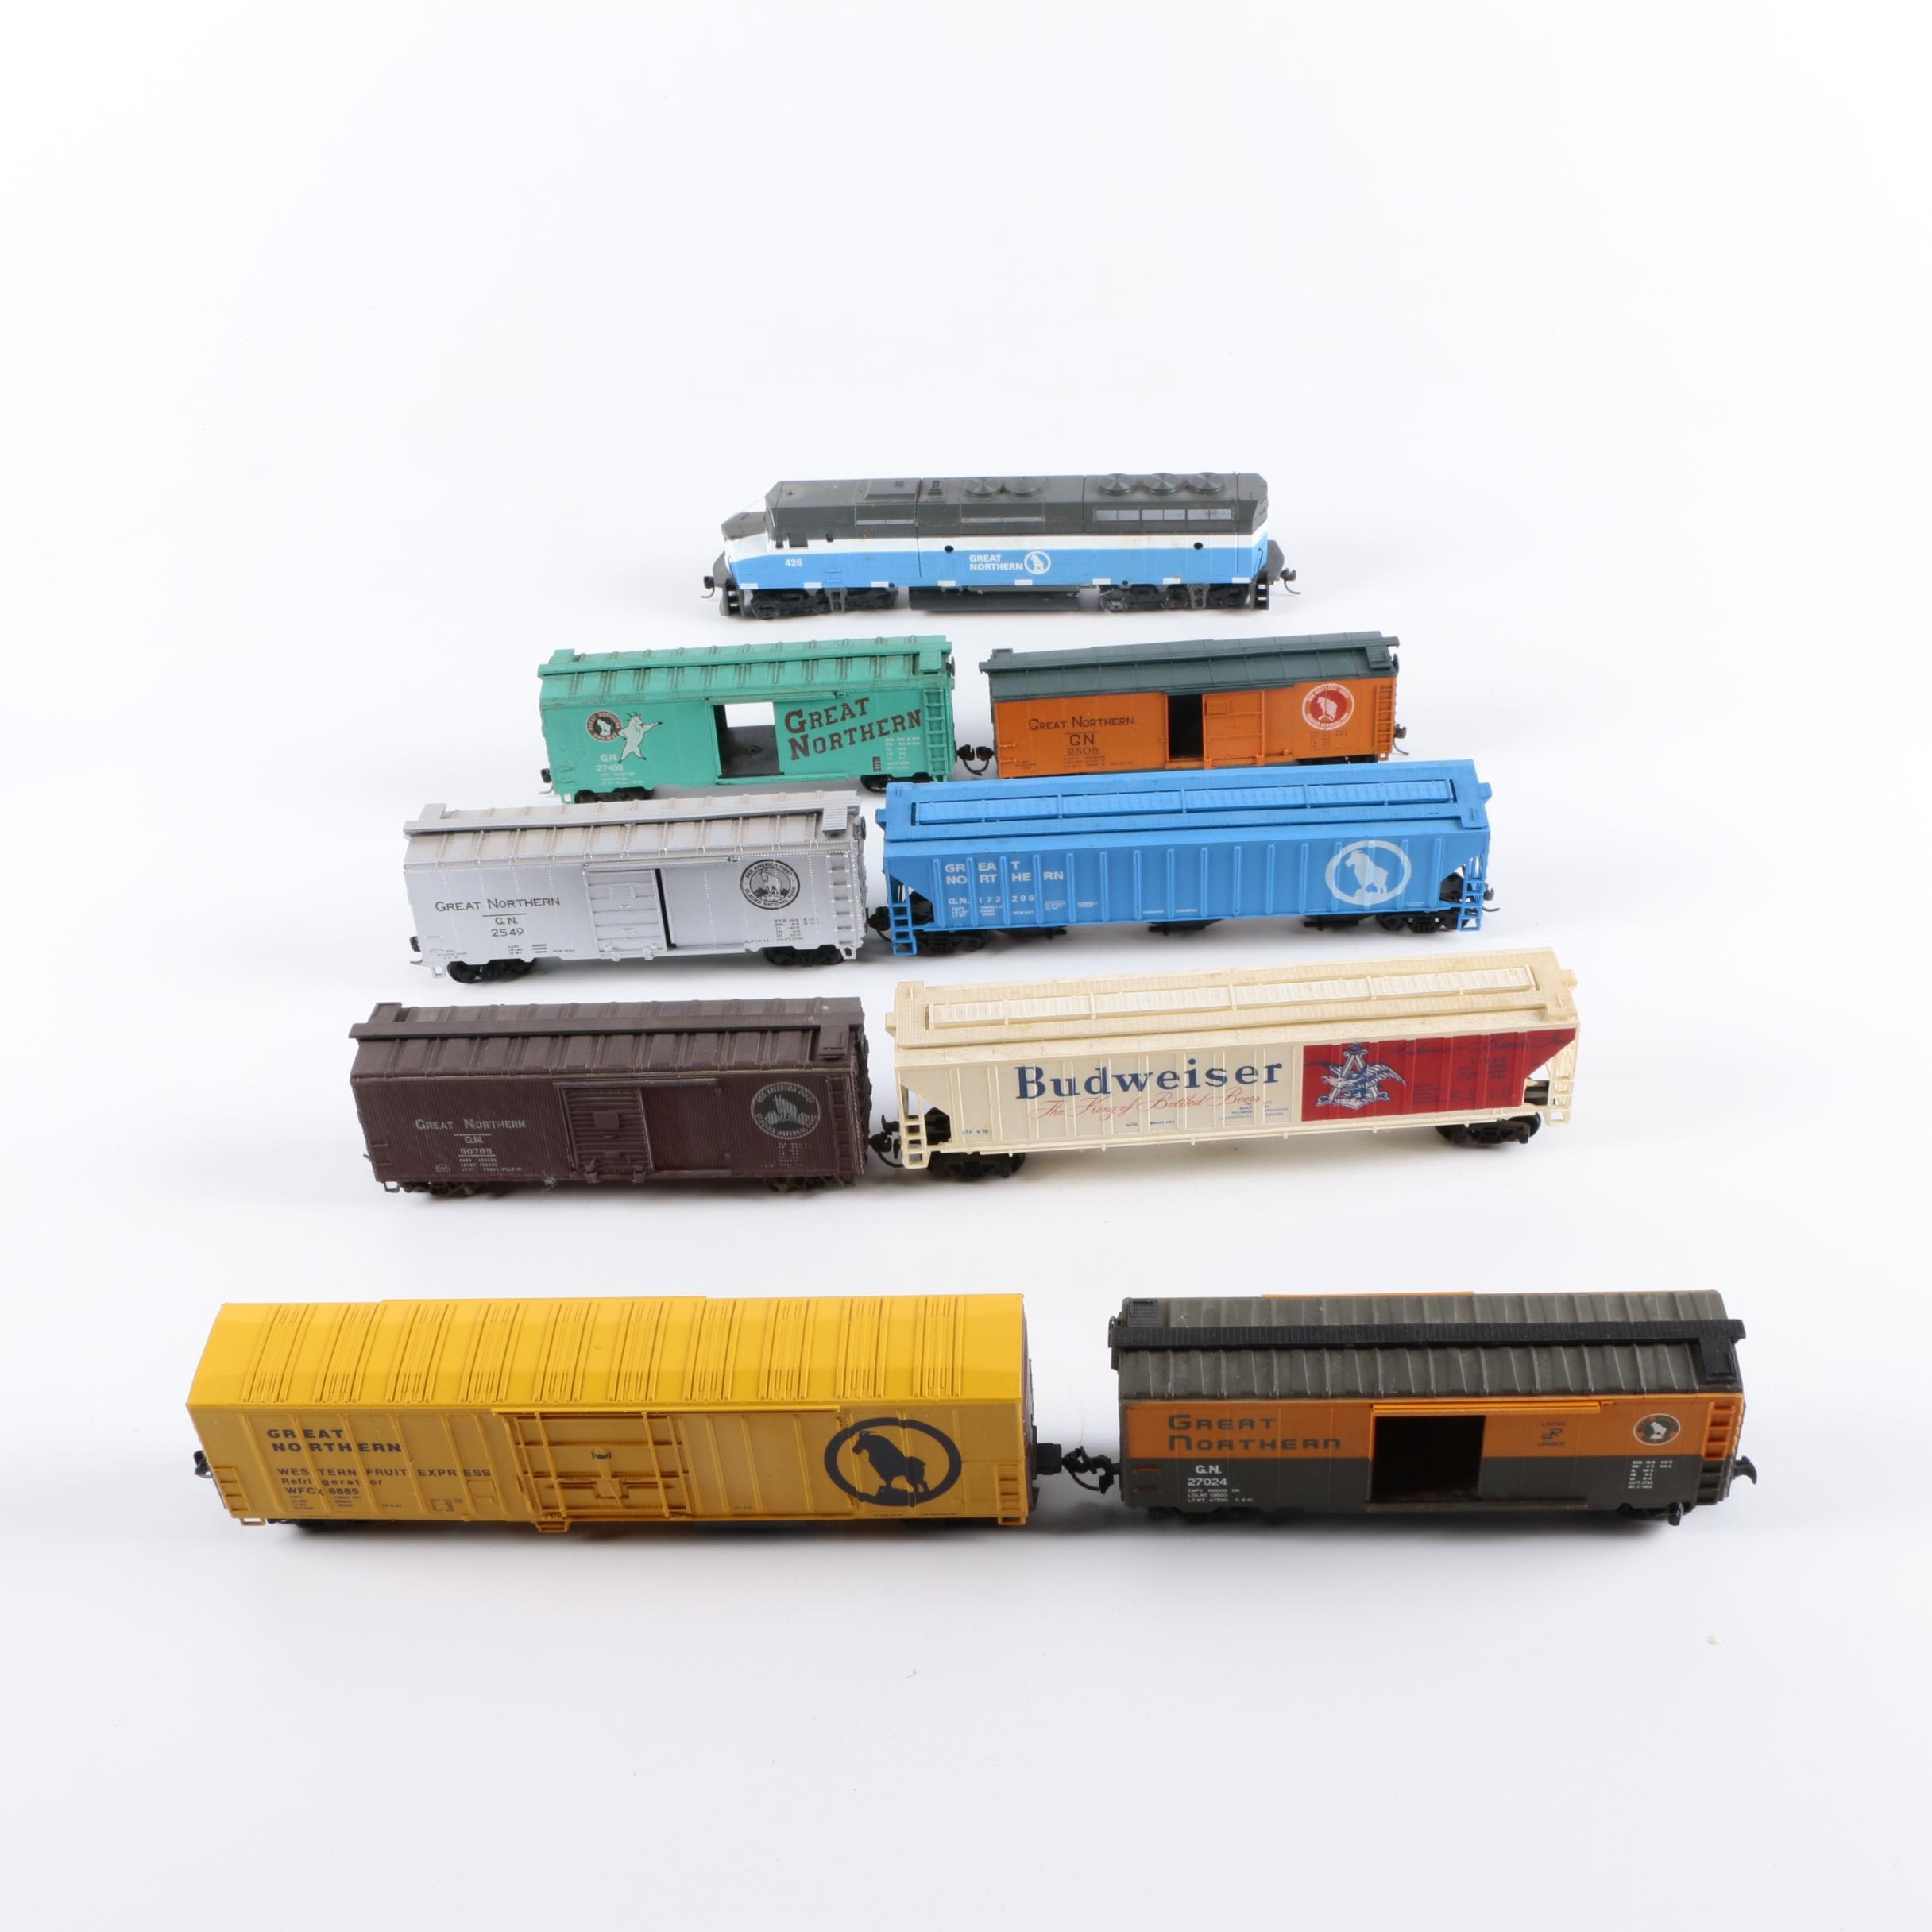 Assorted HO and N Scale Train Cars Including Atlas